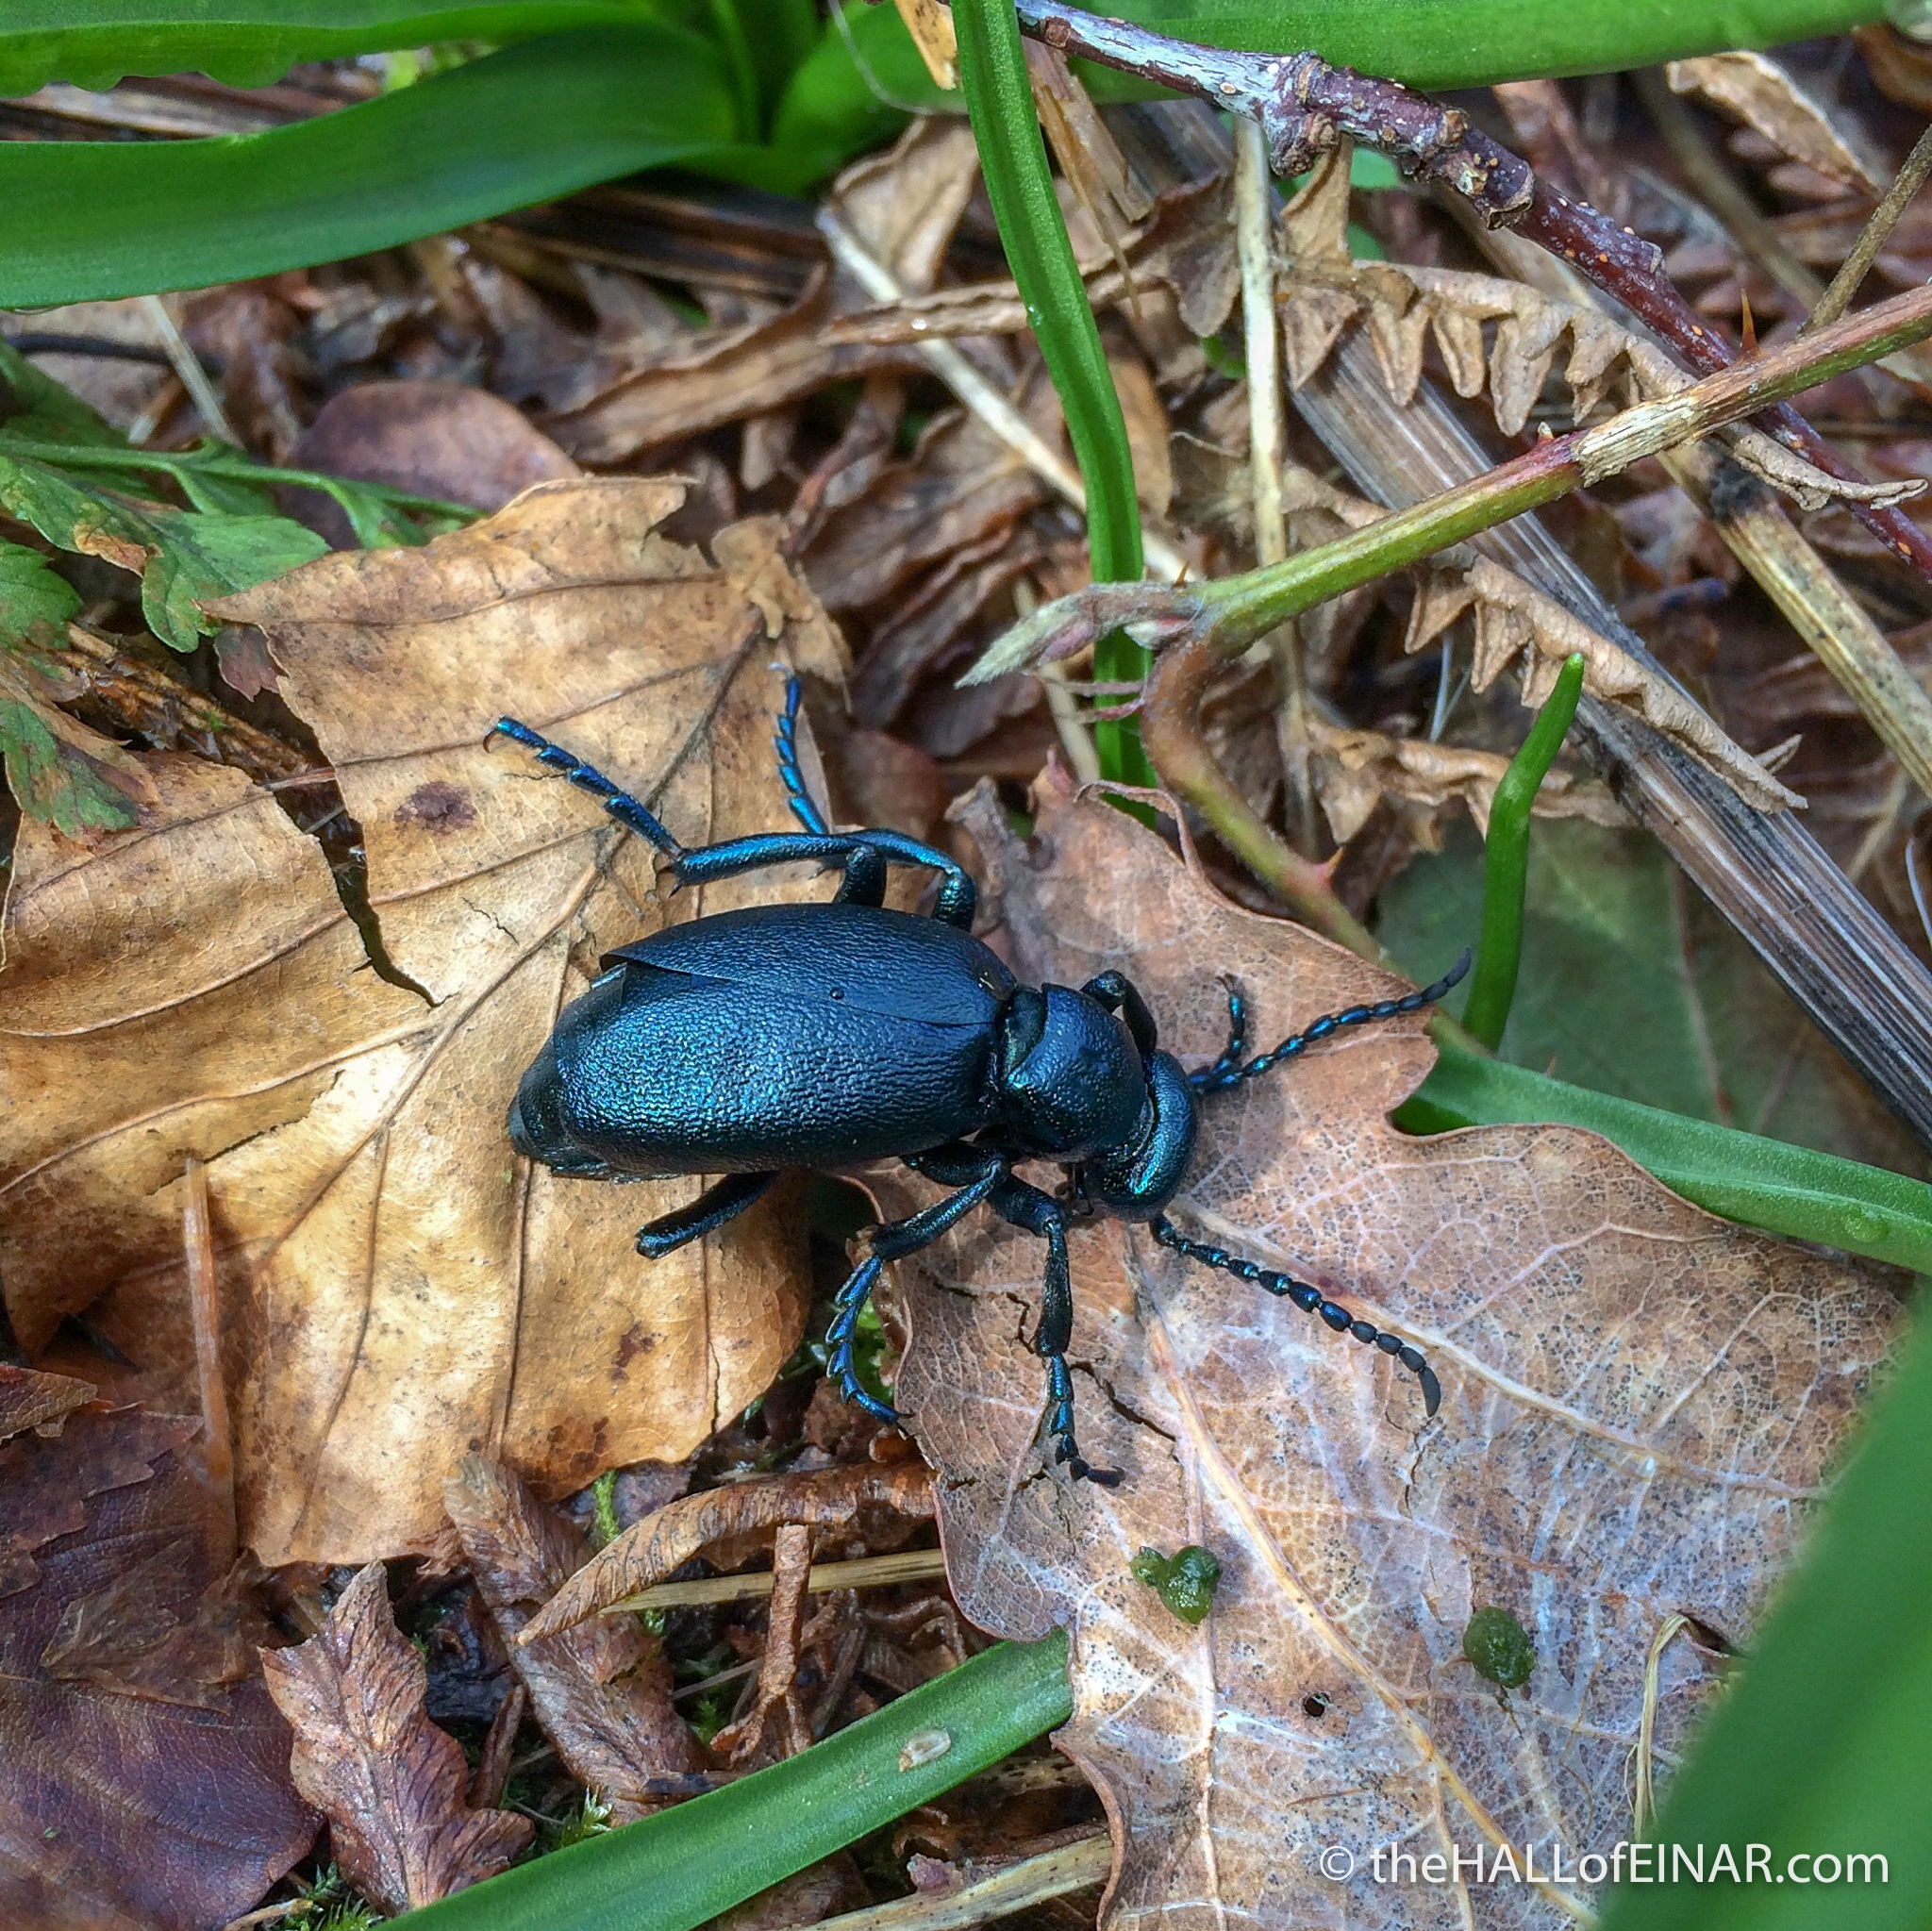 Violet Oil Beetle - Bridford Wood - The Hall of Einar - photograph (c) David Bailey (not the)